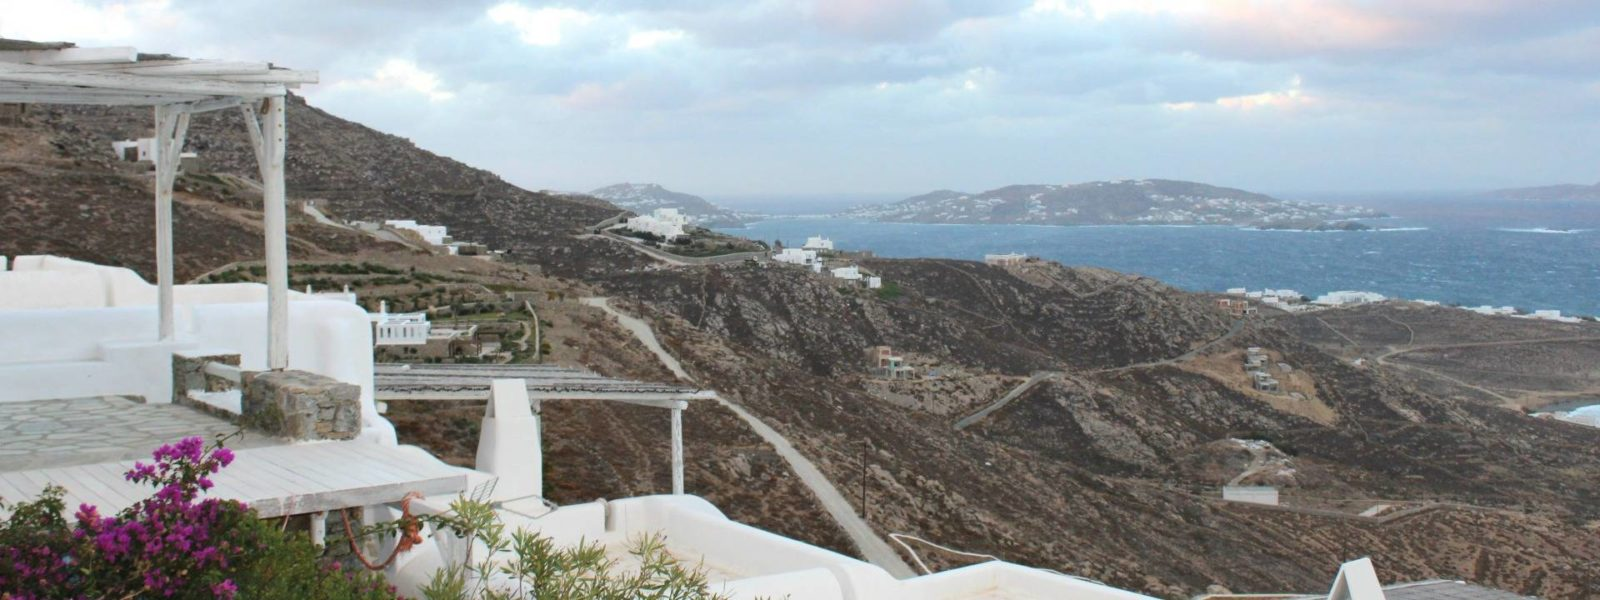 #LTgreekweek // one week in mykonos with @mygreekvilla